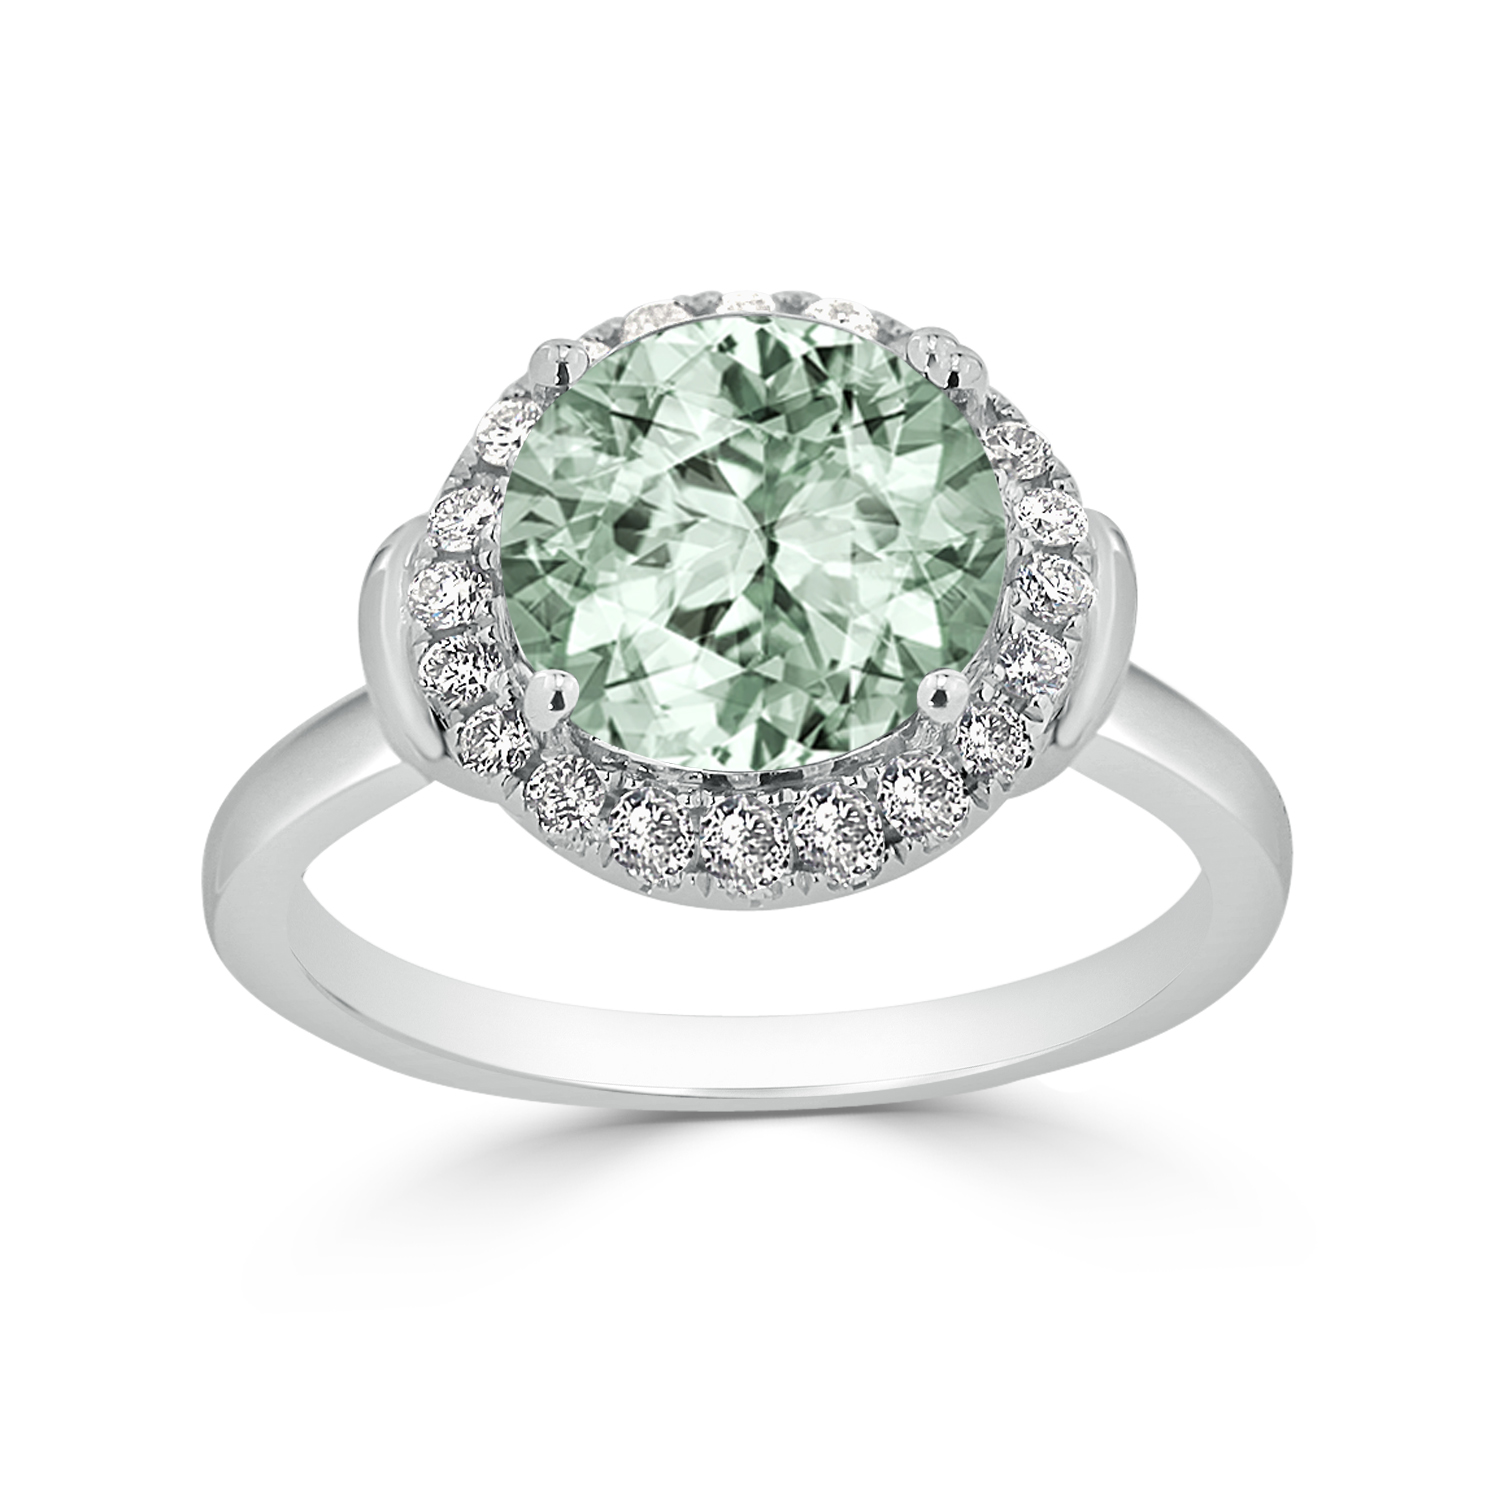 Halo Green Amethyst Diamond Ring in 14K White Gold with 2.50 carat Round Green Amethyst